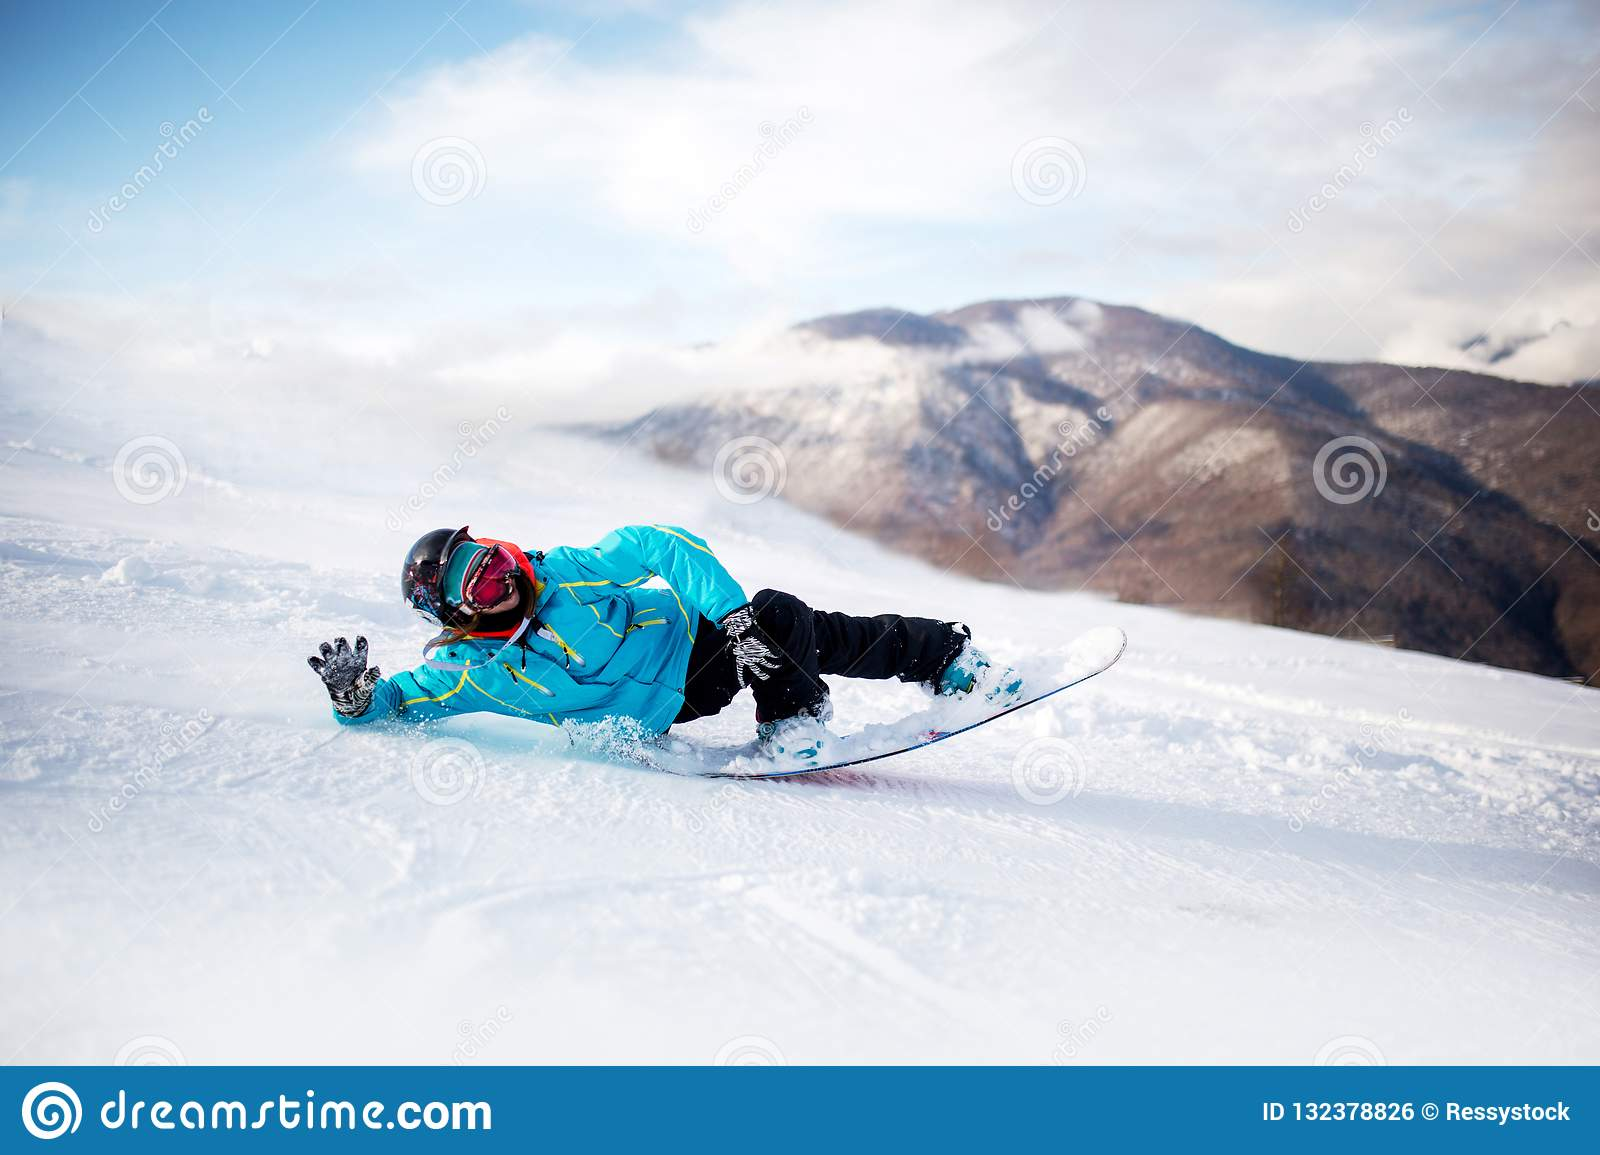 Snowboarder in high mountains during sunny day lay on snow.